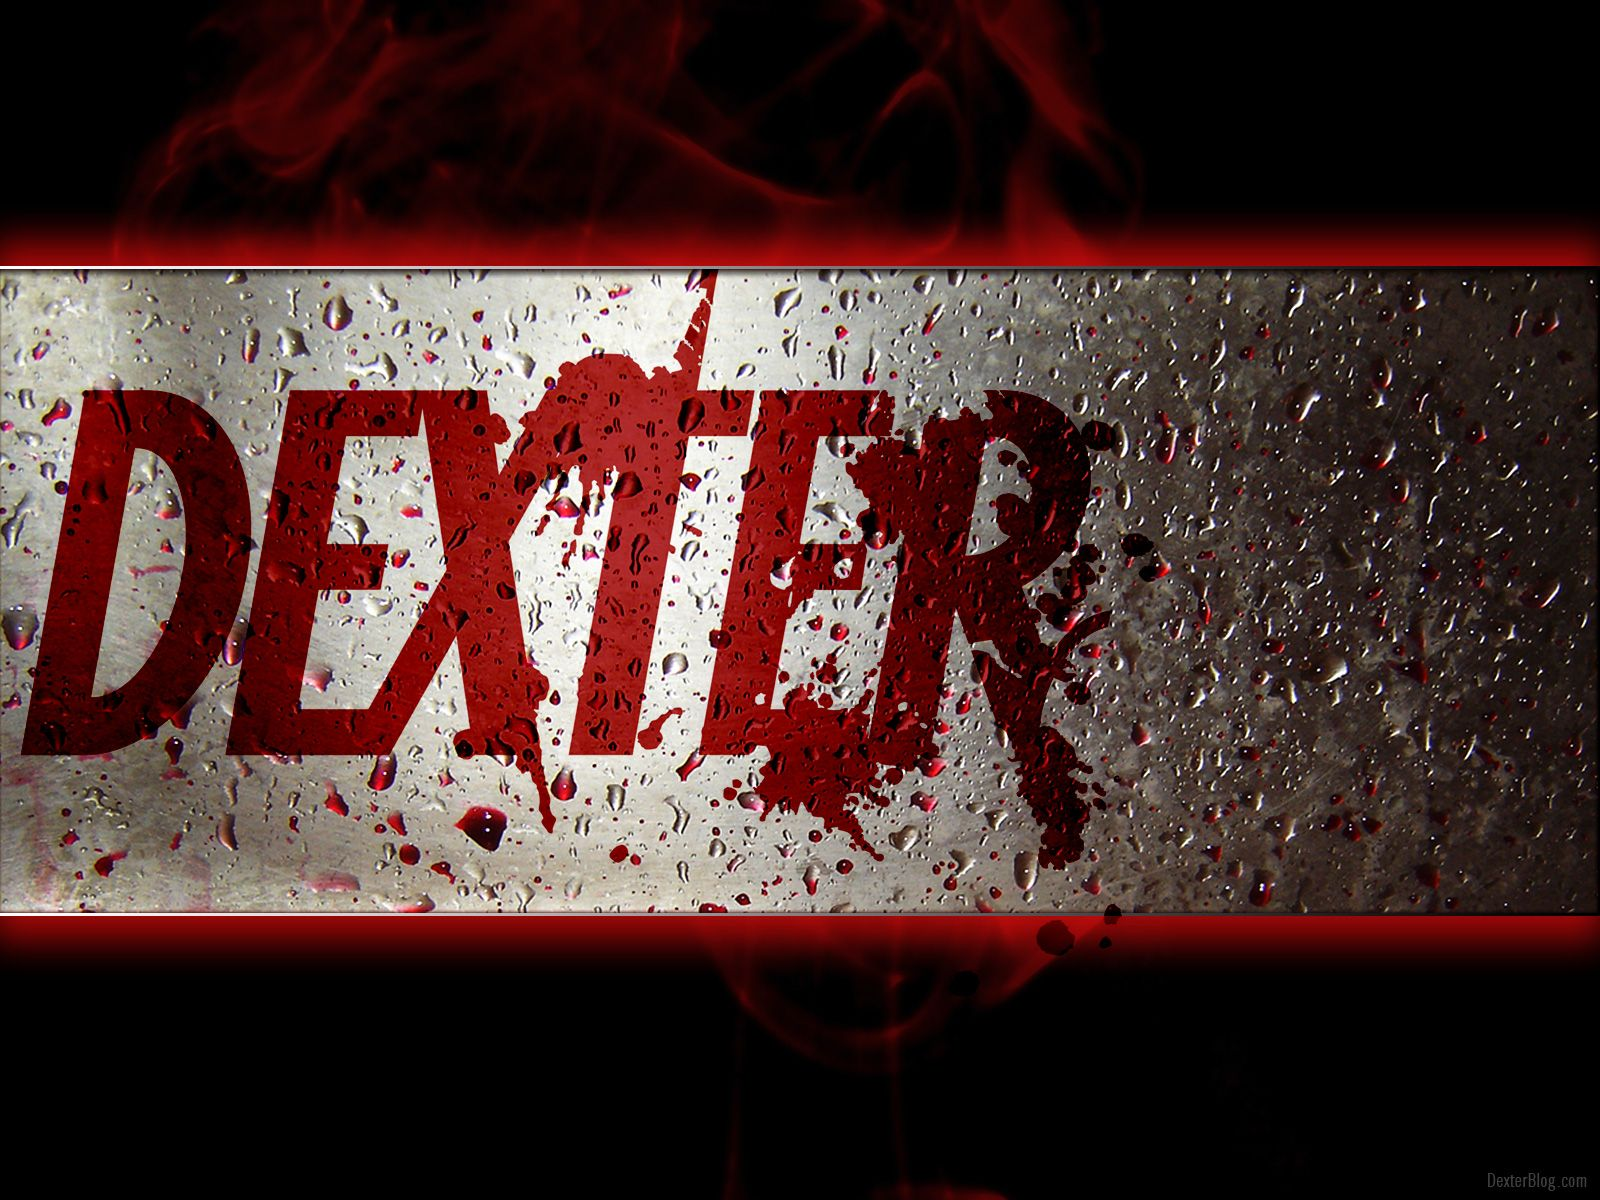 Dexter Hd Wallpapers Wallpaper 2560 1024 Dexter Images Wallpapers 52 Wallpapers Adorable Wallpapers